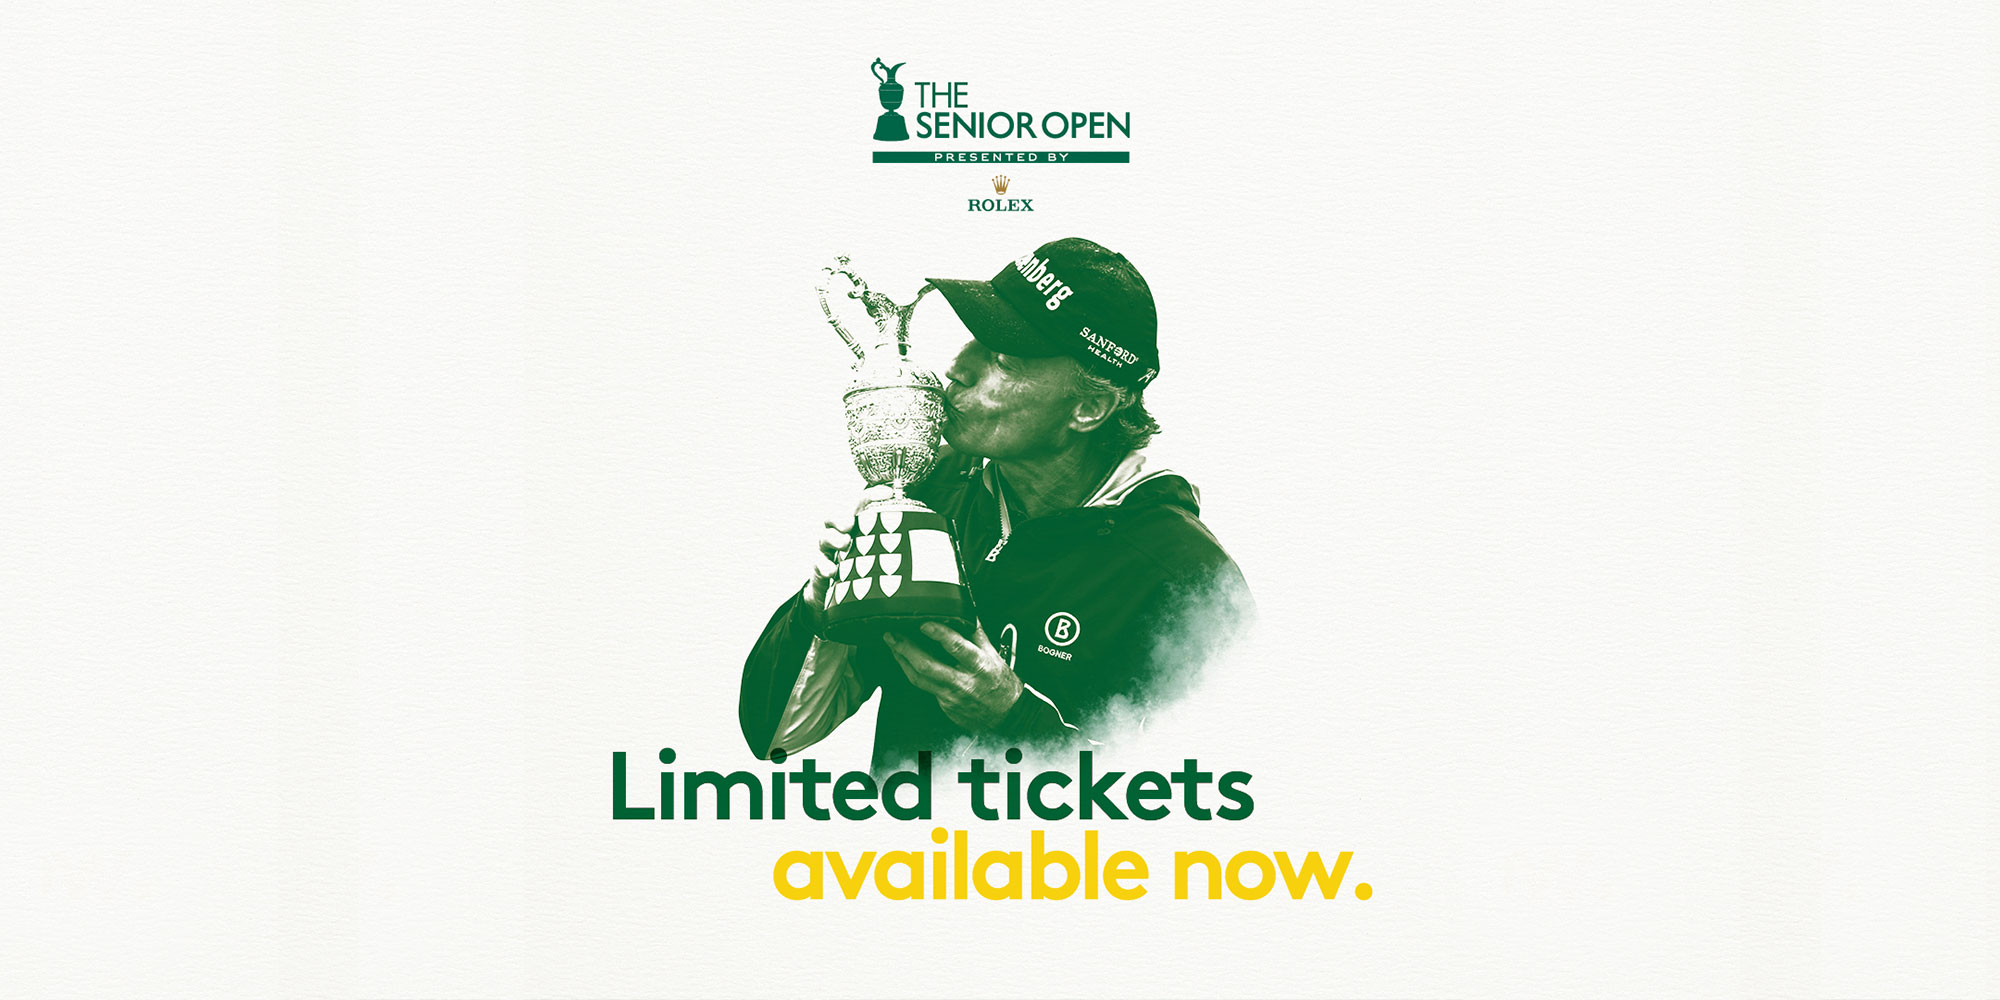 The Senior Open Presented by Rolex - Saturday